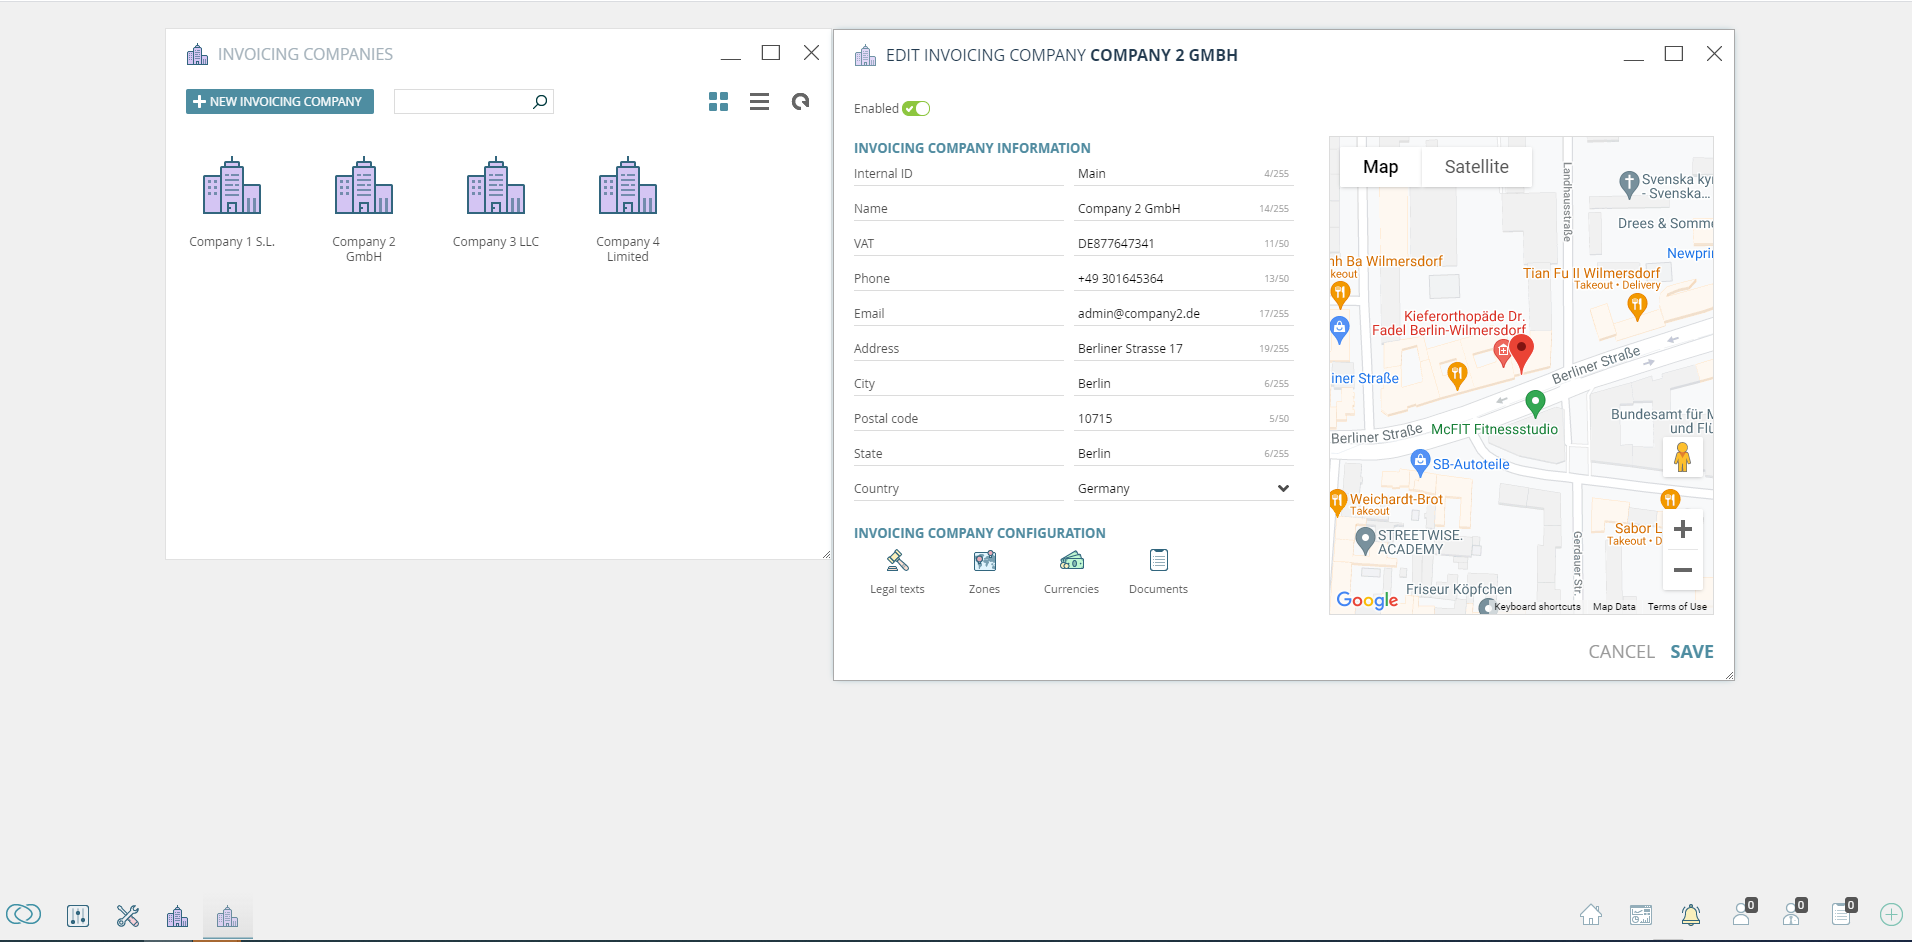 Multi-Invoicing Company: Create multiple companies and bill your customers based on their location.